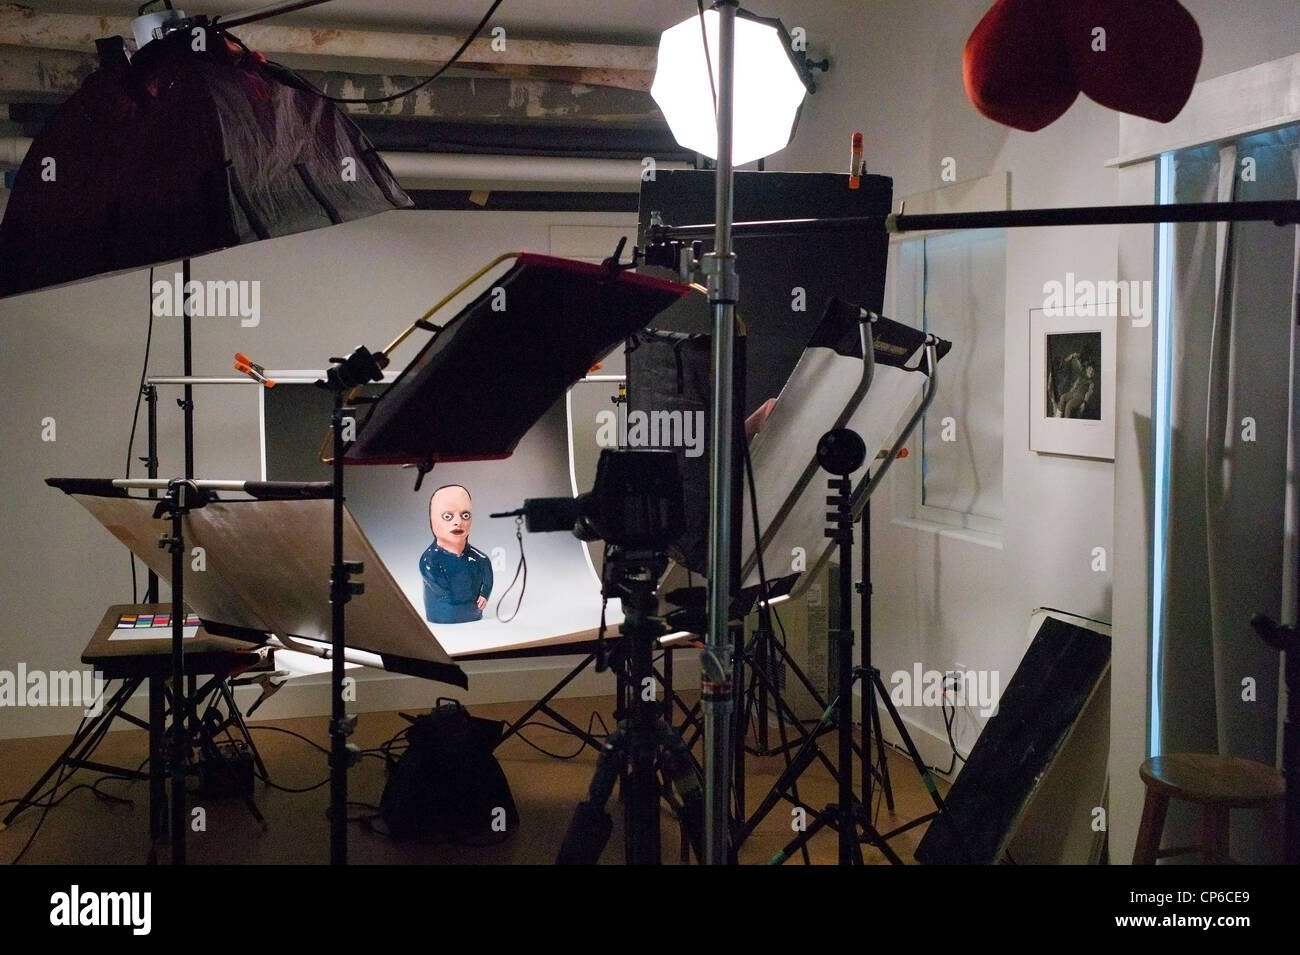 how to build a commercial photography studio